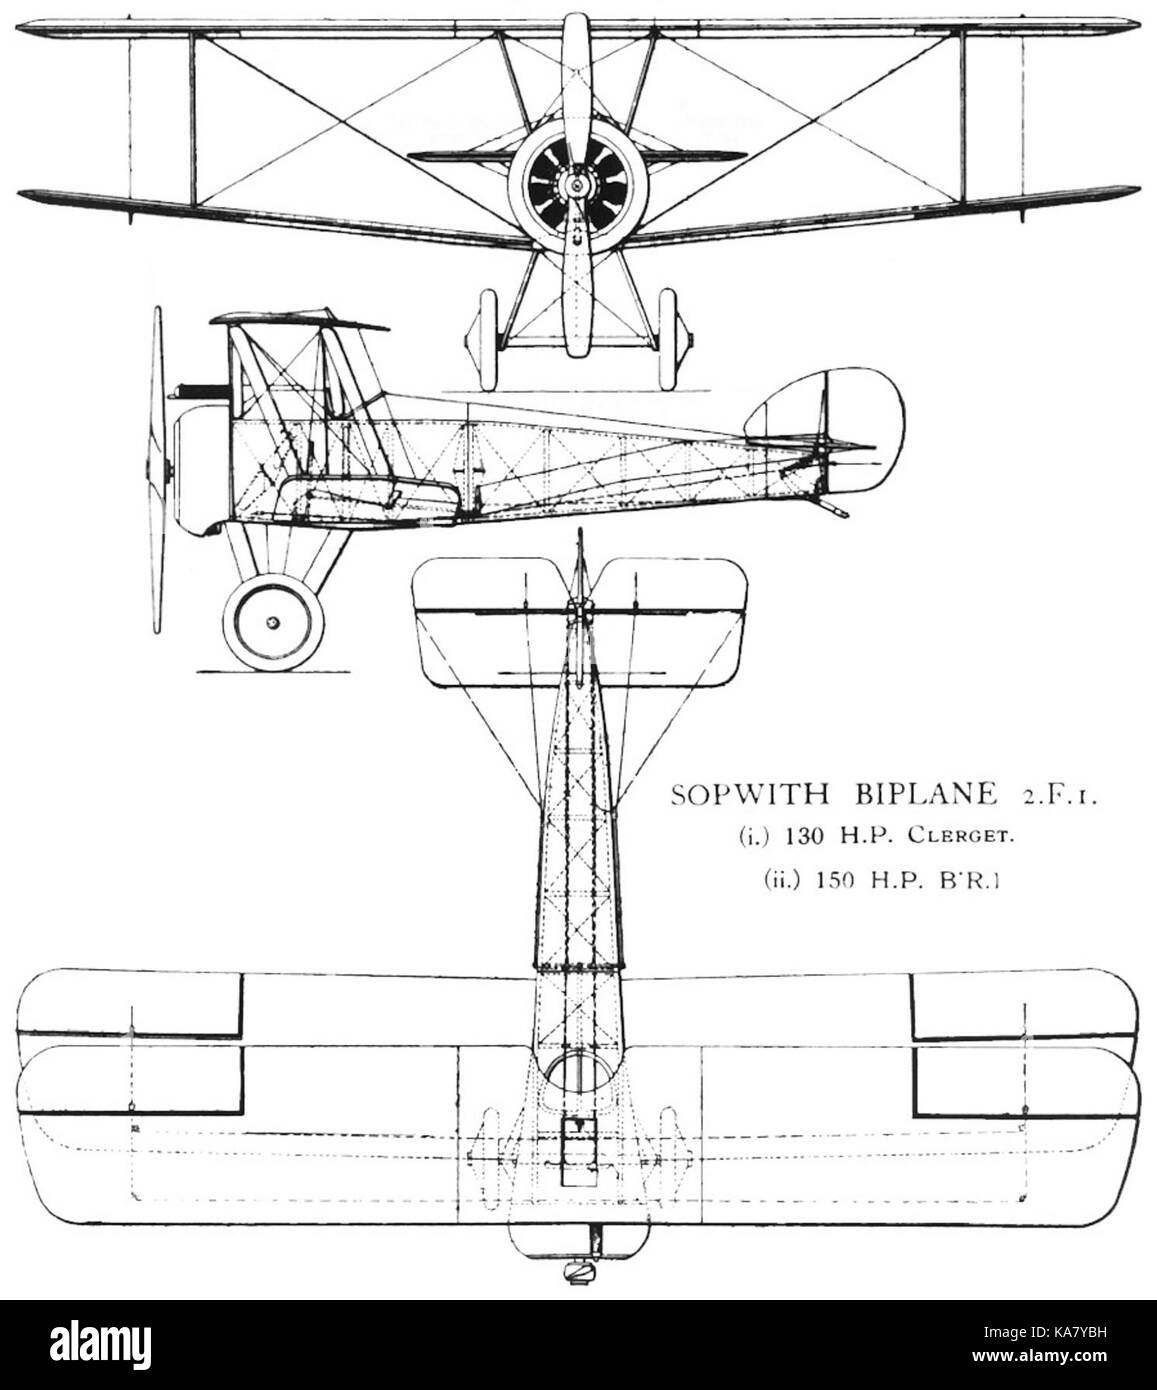 Sopwith 2 F 1 Ship's Camel drawing Stock Photo: 161215029 - Alamy